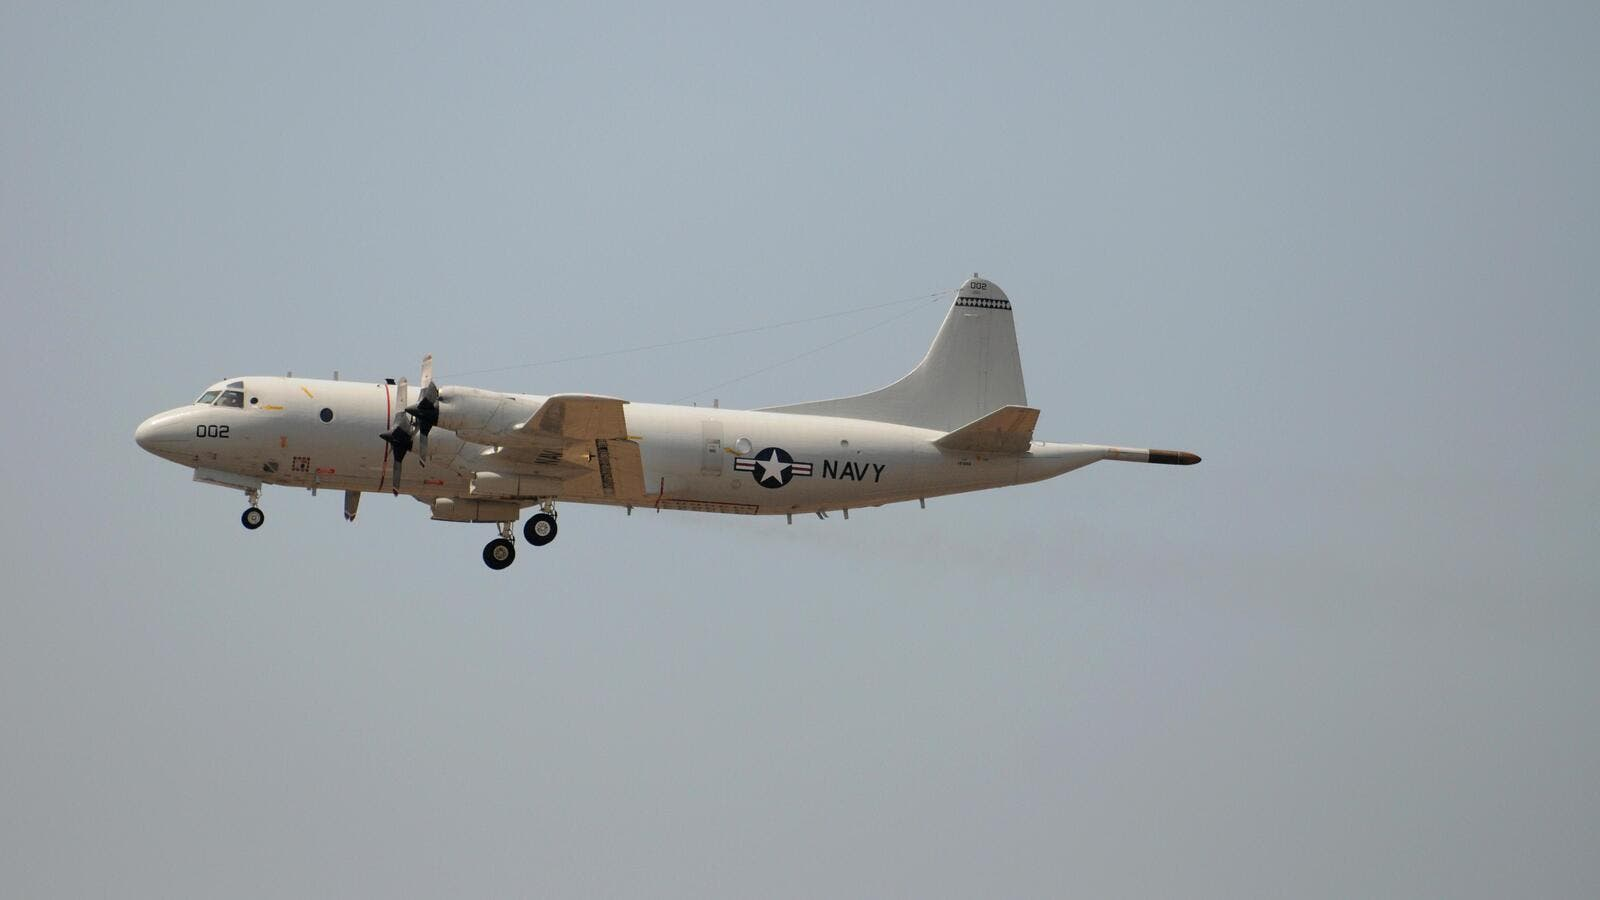 U.S. Navy P3 Orion maritime surveillance aircraft taking off from the Comalapa air base, 40 km south of San Salvador, on May 13, 2009. (AFP/ File Photo)